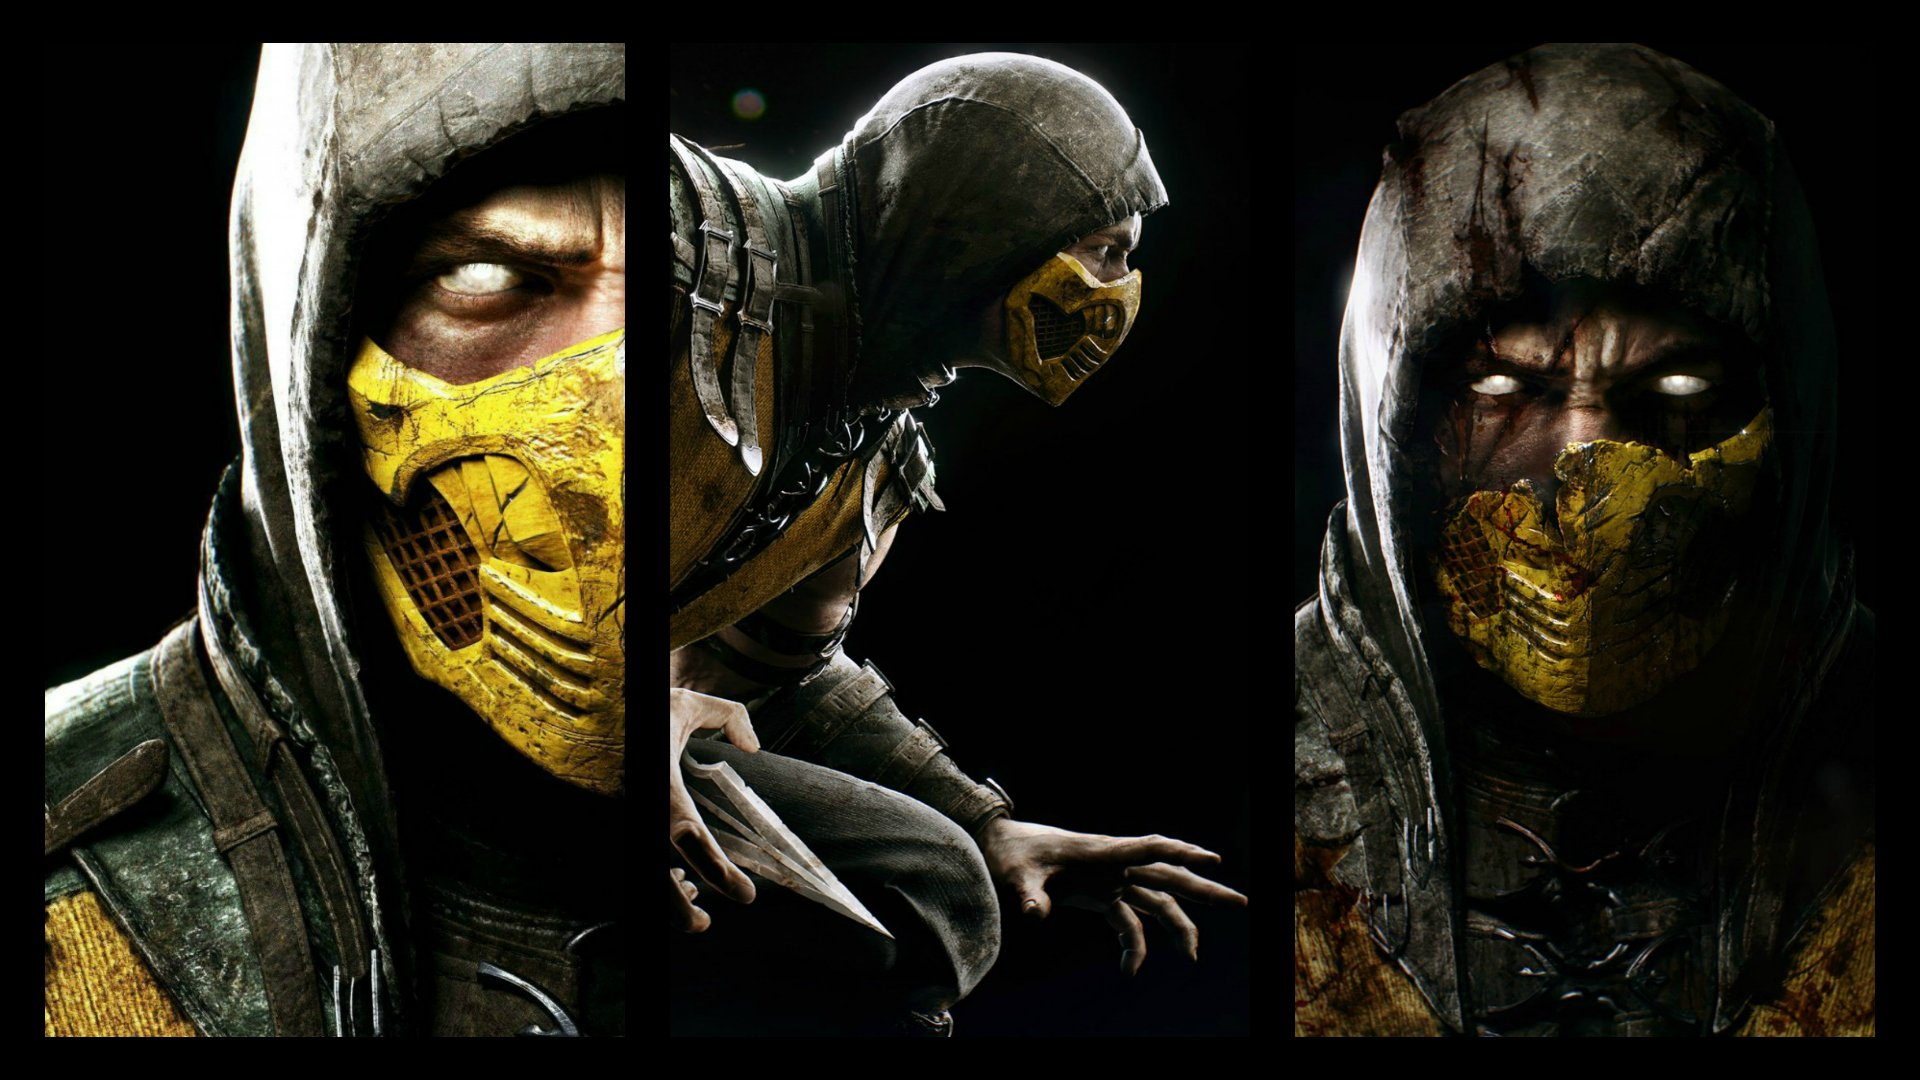 mortal kombat x   scorpion wallpaper by theomeganerd d7up53mjpg 1920x1080